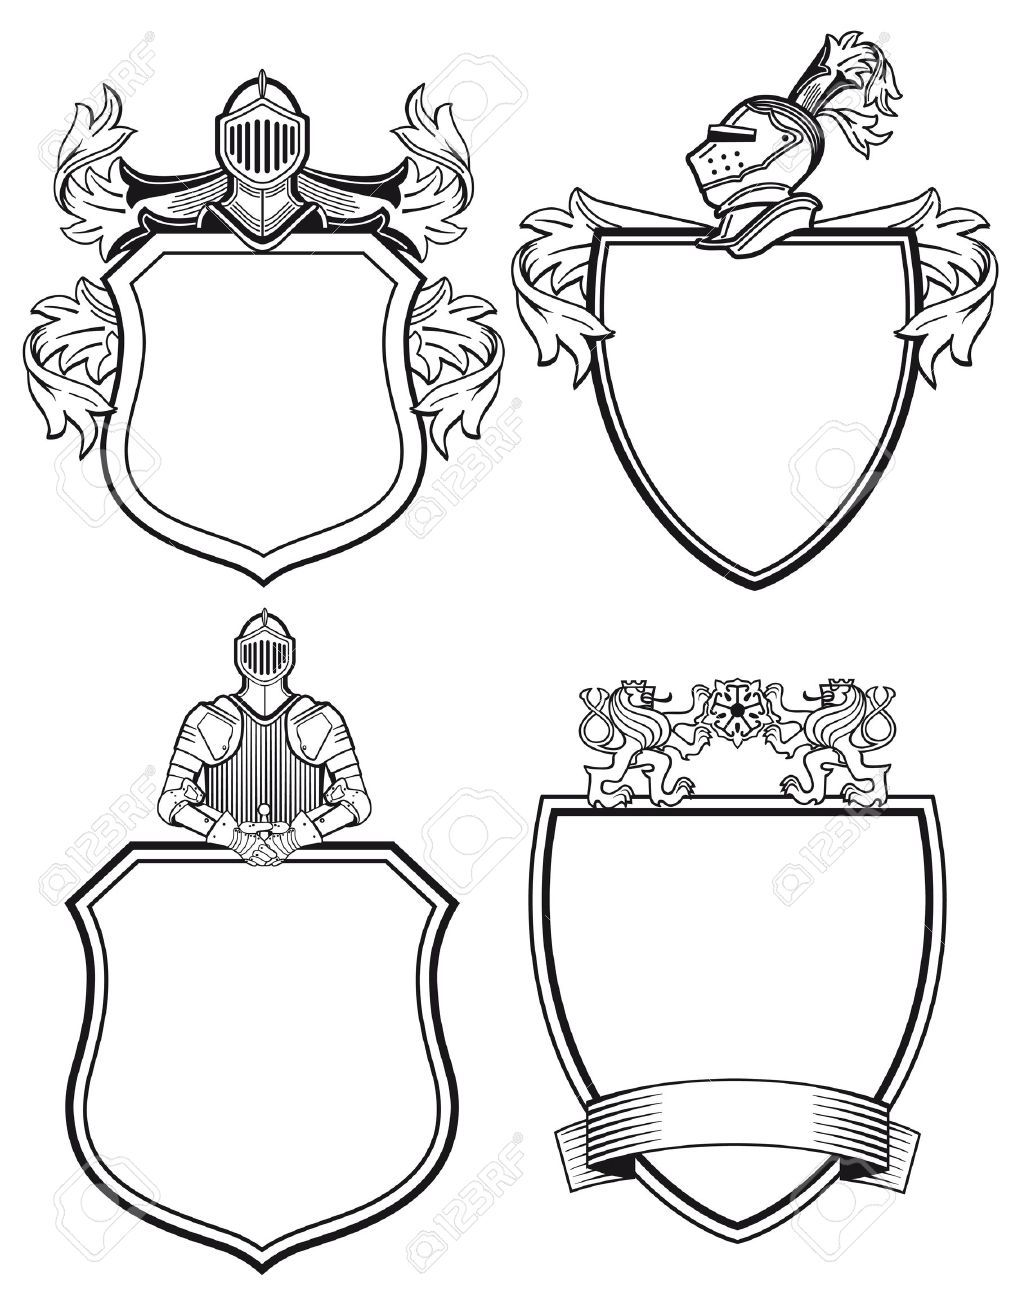 svg freeuse library Stock shield tattoo coat. Vector crest knight